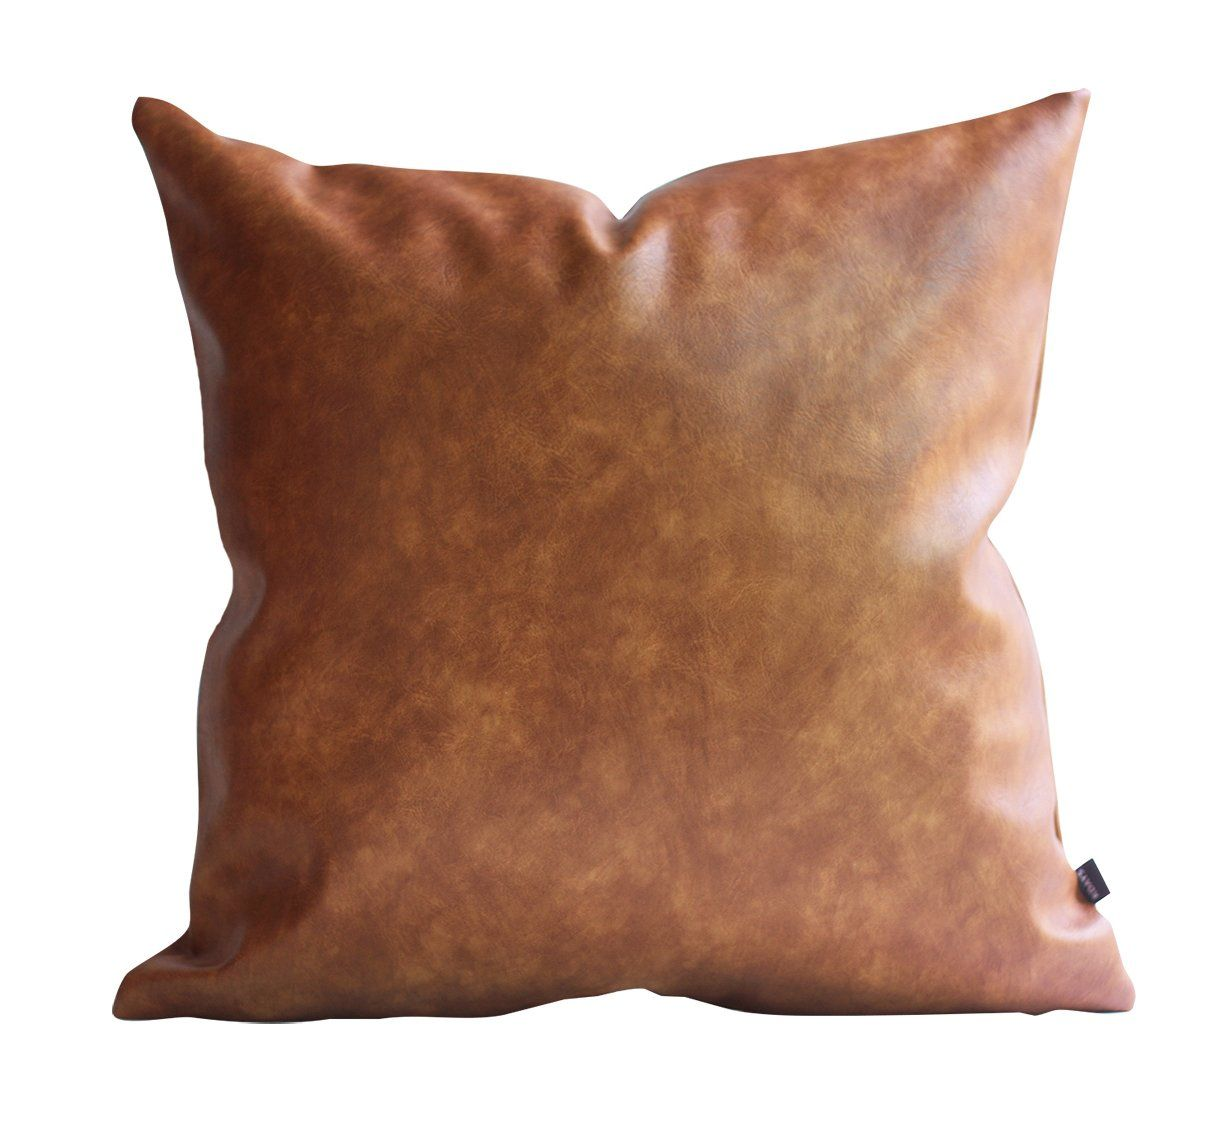 Kdays Thick Brown Faux Leather Throw Pillow Cover Cognac Leather Decorative Throw Pillow Case Farmhouse Decor In 2020 Leather Throw Pillows Leather Pillow Tan Pillows